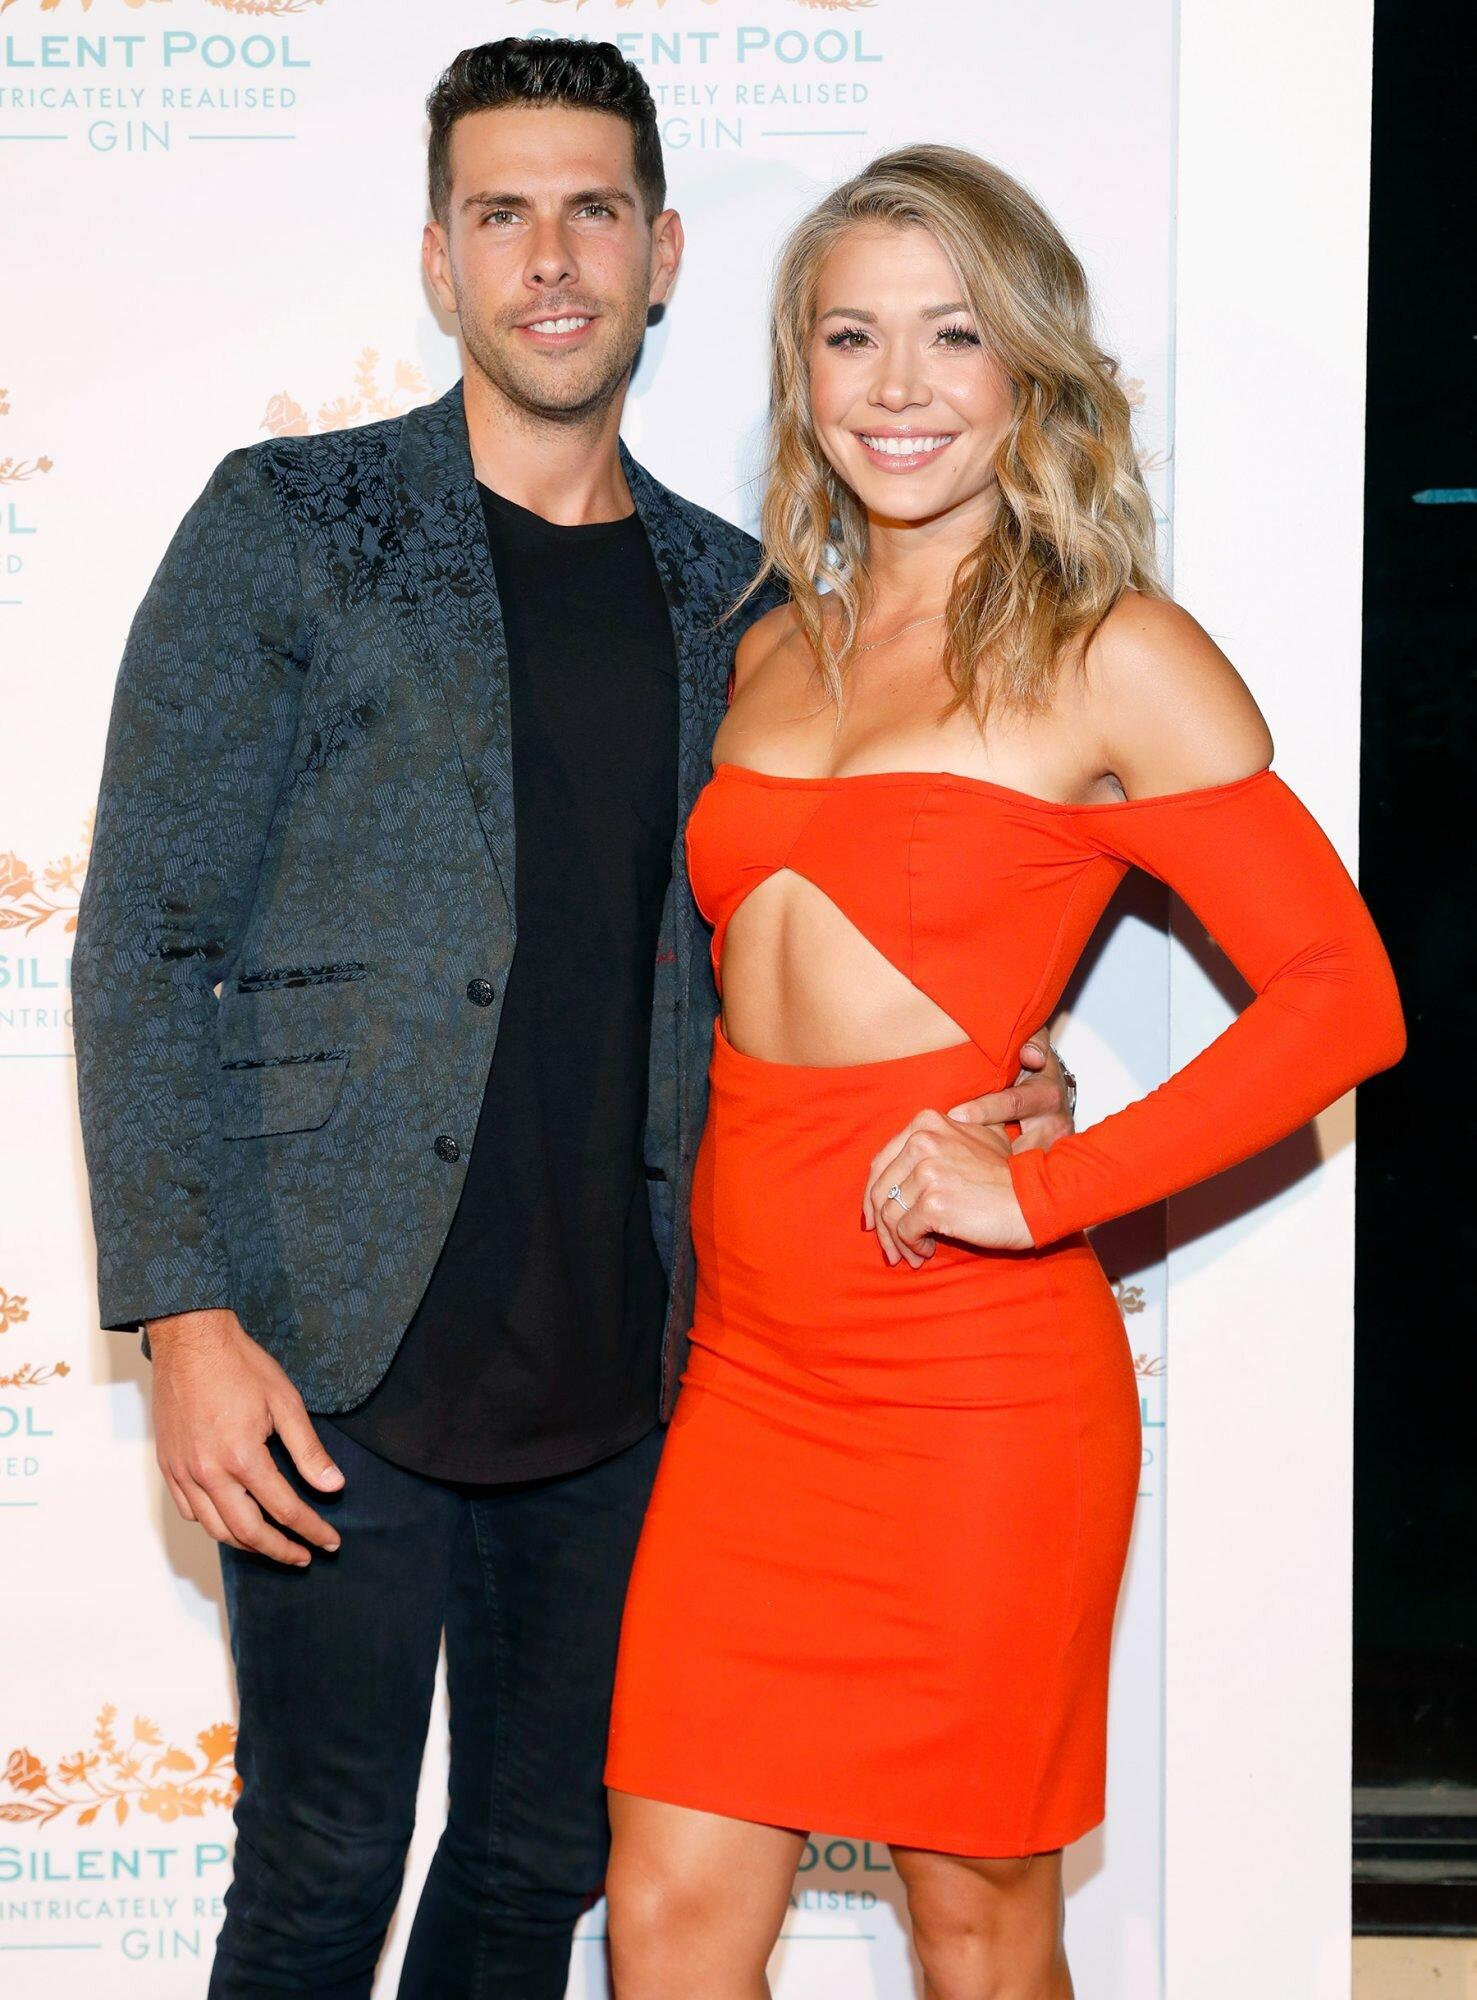 Bachelor Nation's Chris Randone Says Producers Didn't 'Influence' Proposal to Krystal Nielson - Yahoo Entertainment